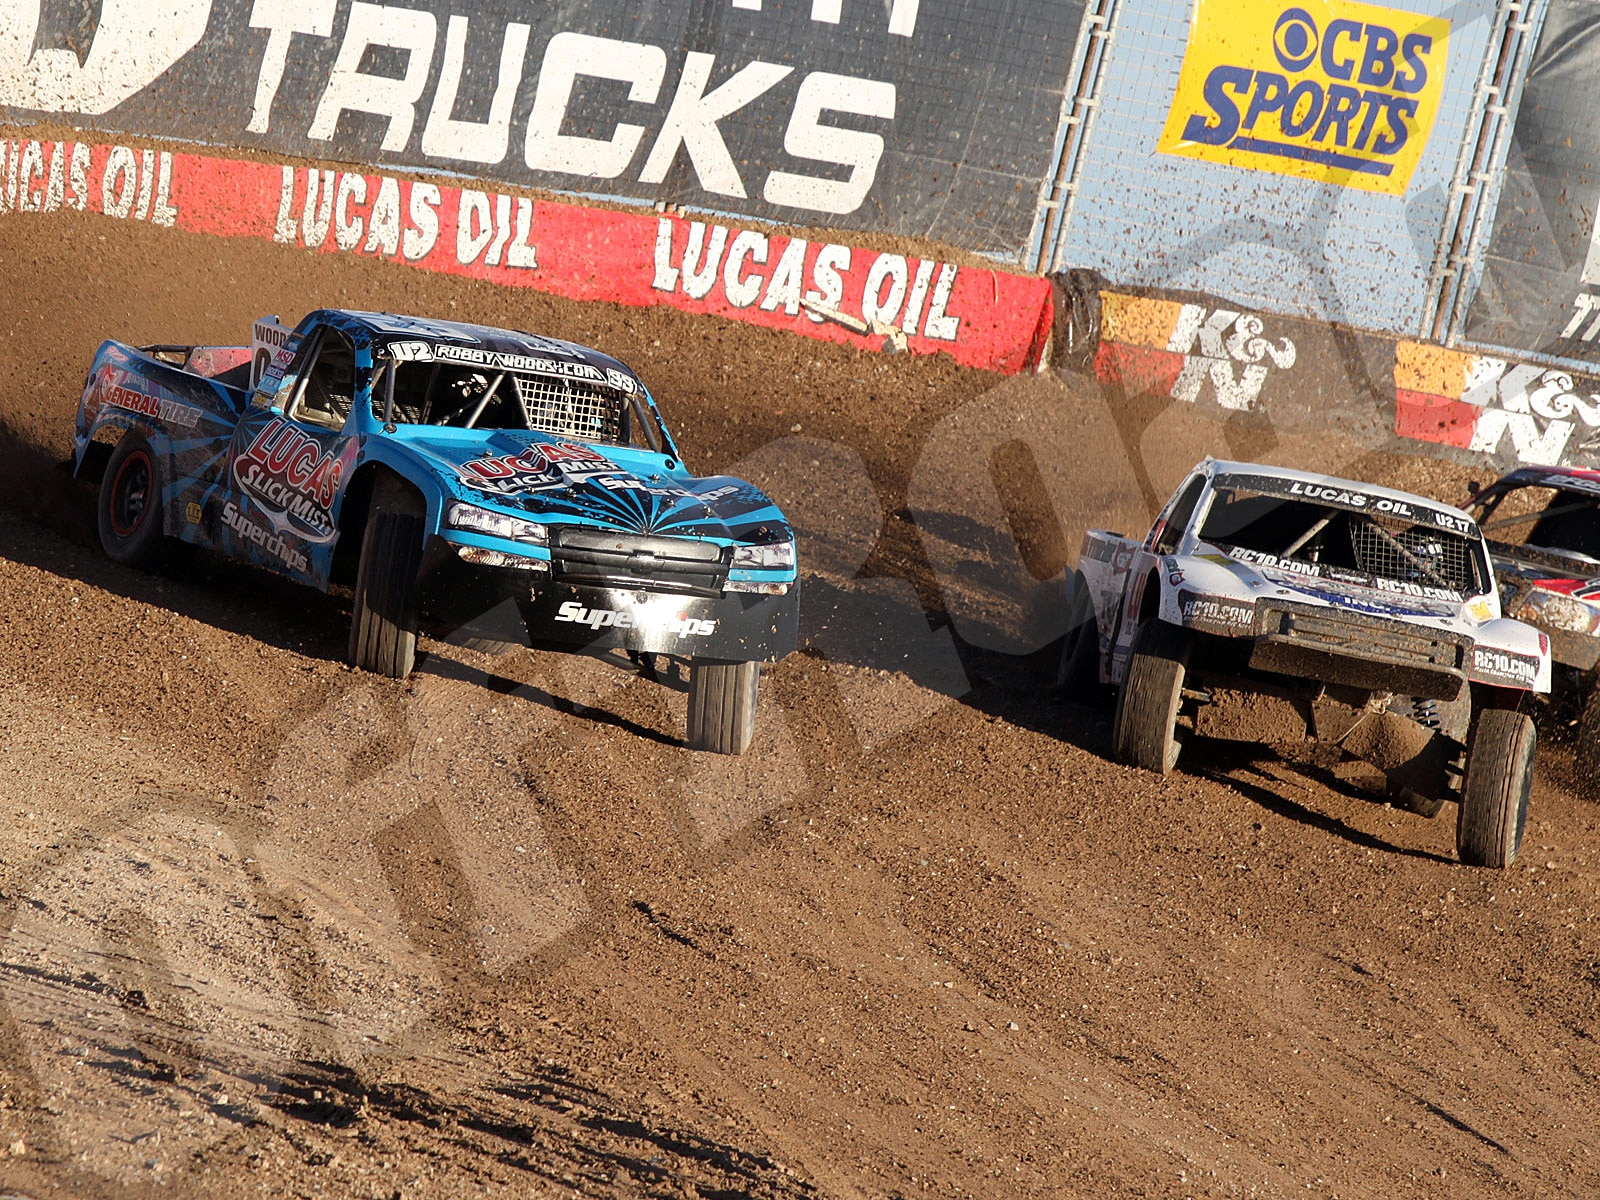 111610or 9295+2010 lucas oil off road racing series+pro 2